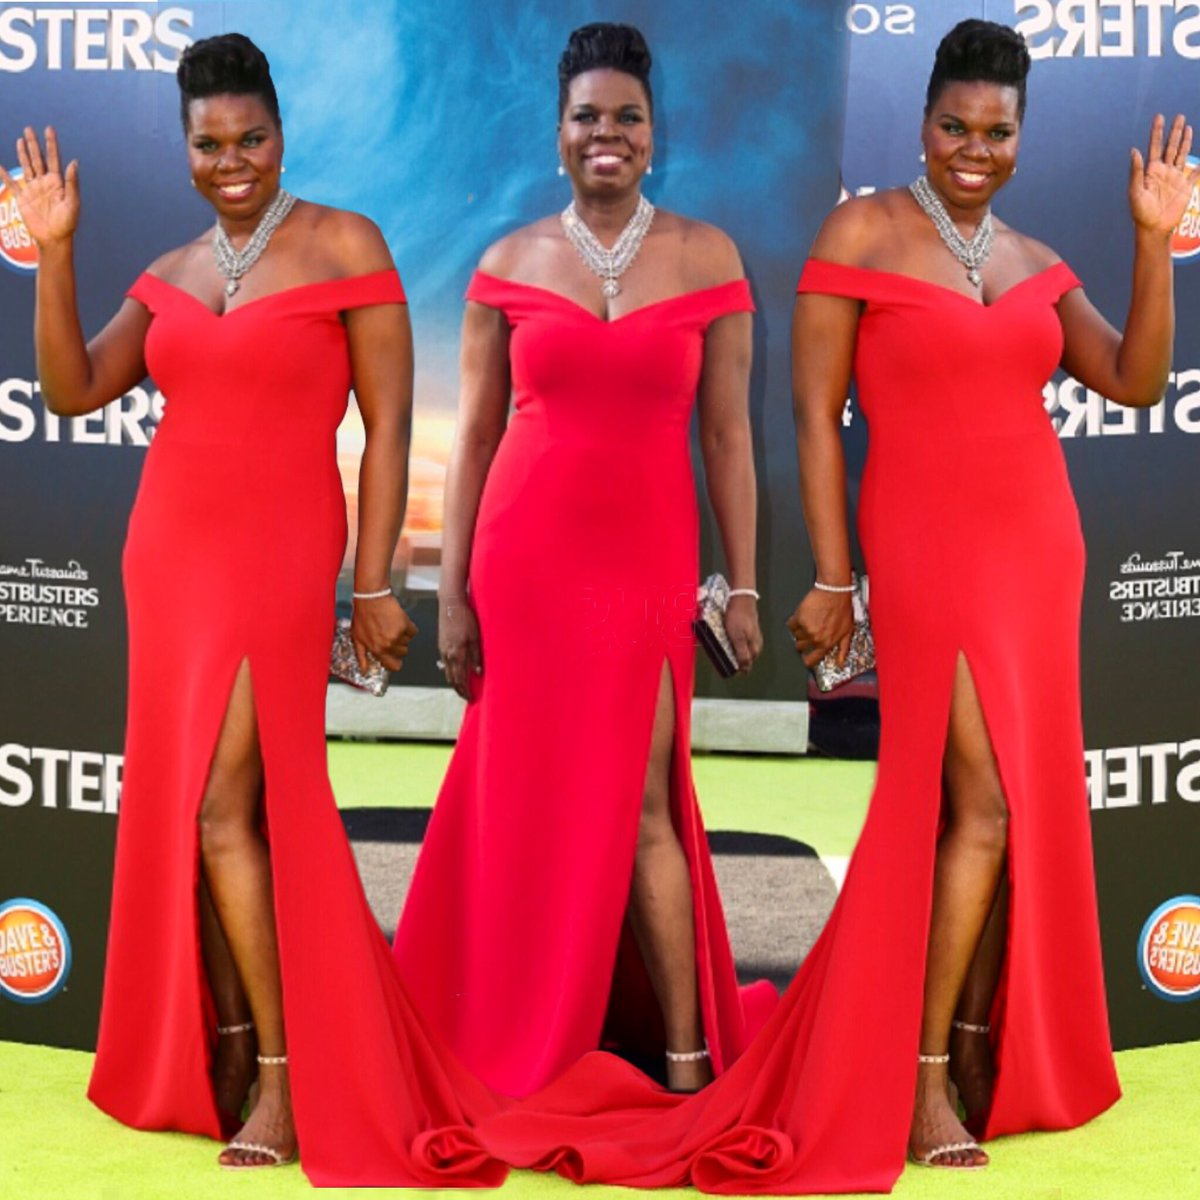 Now that's how you do it! Simple, elegant, and chic!! @Lesdoggg at the premiere of #Ghostbusters wearing Siriano! https://t.co/gz3CmGFGaL